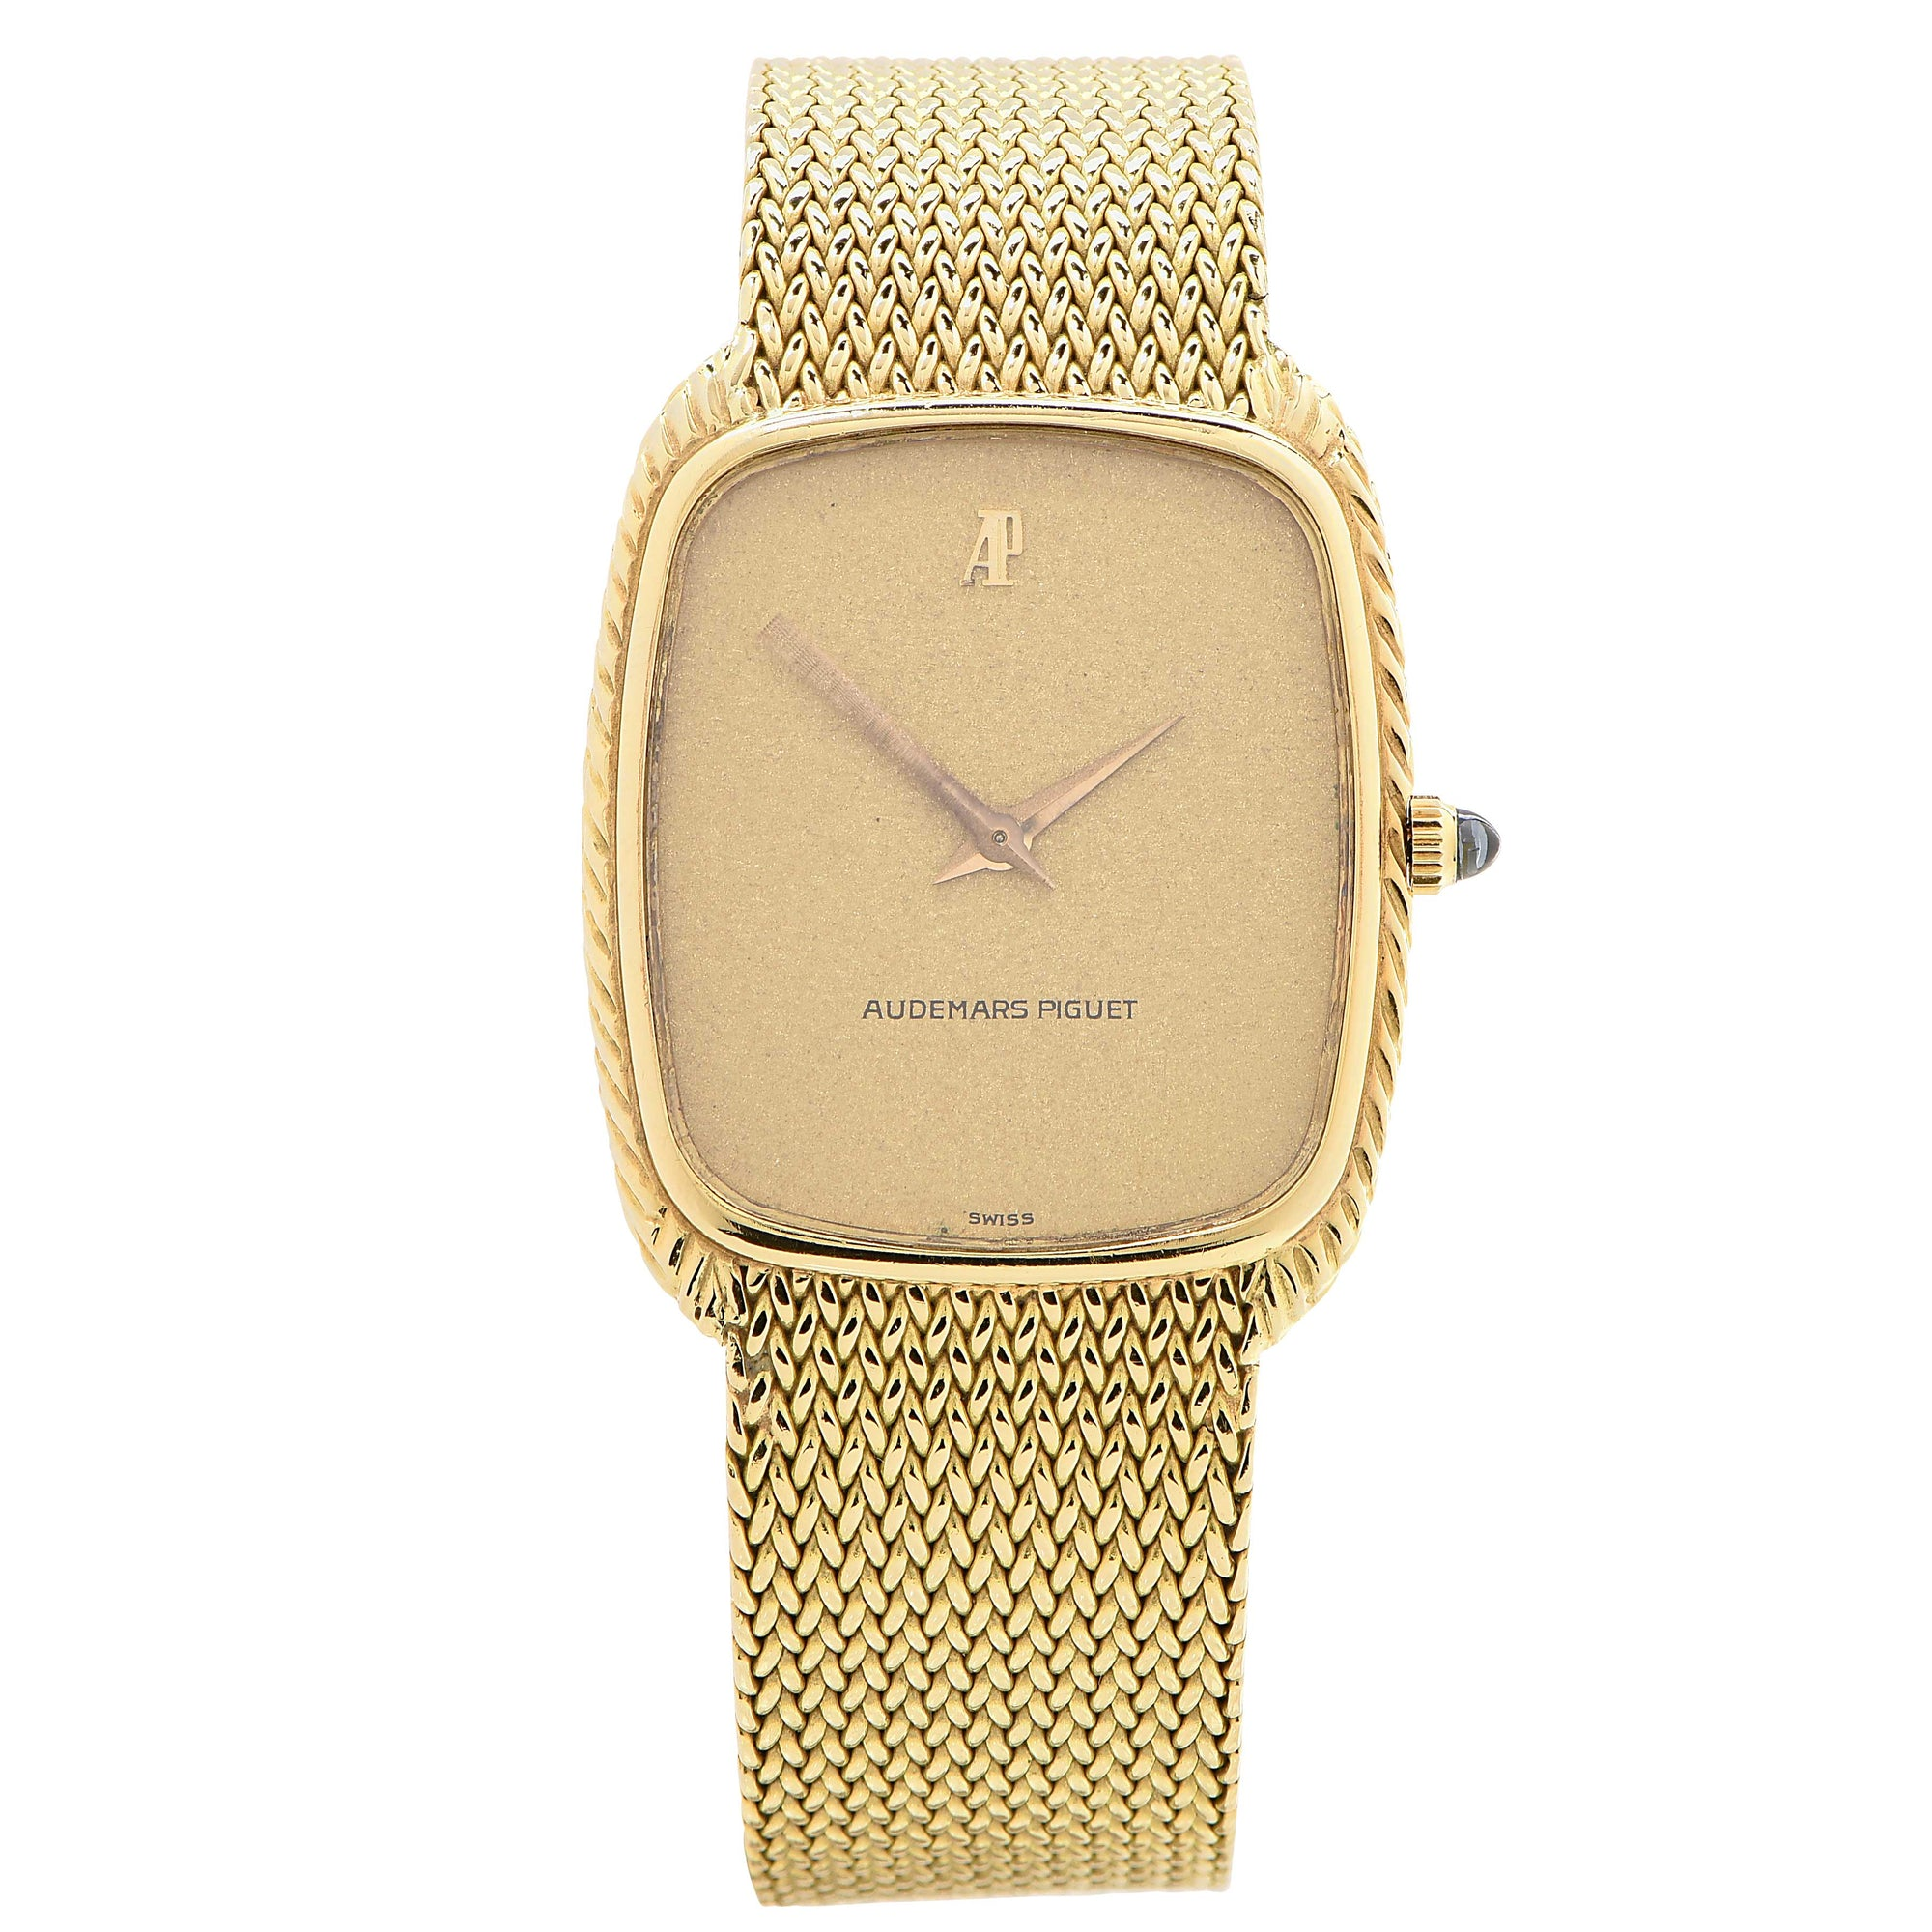 1970's Audemars Piguet Manual Wind Gold Watch